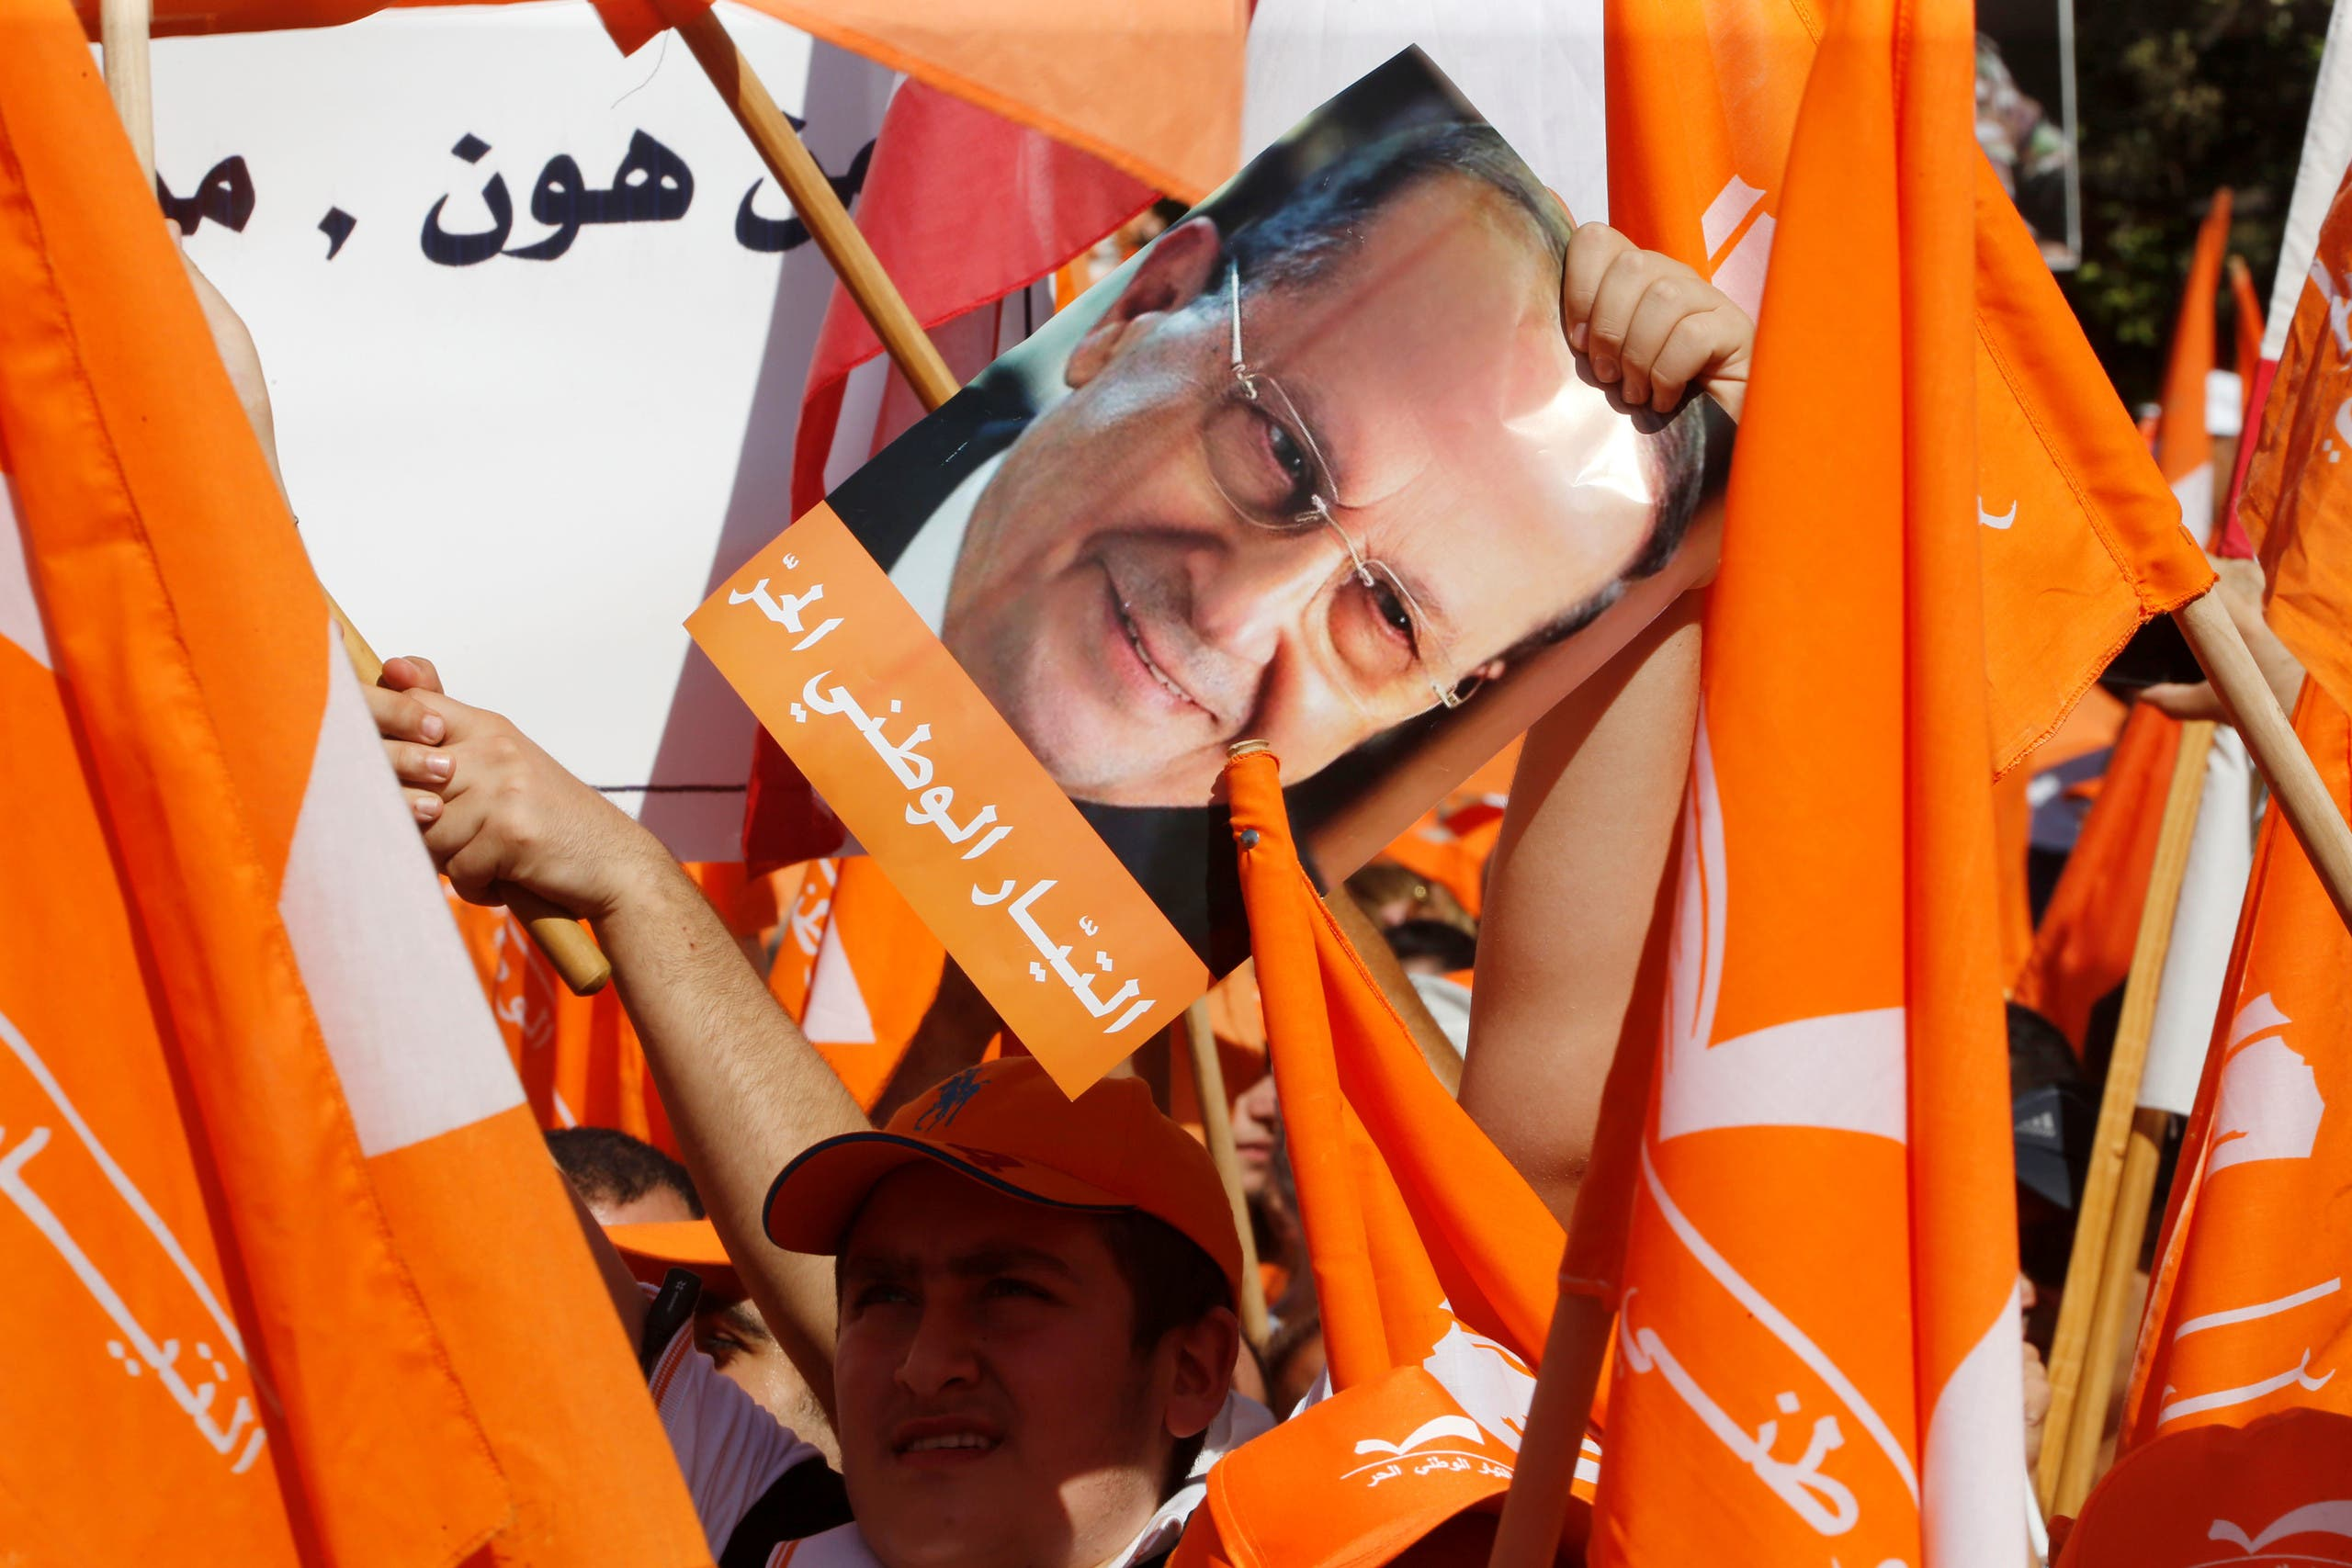 Supporters of the Free Patriotic Movement (FPM) carry flags and a picture of Christian politician and FPM founder Michel Aoun during a rally to show support for Aoun and calling to elect a president, near the presidential palace in Baabda, near Beirut, Lebanon October 16, 2016. REUTERS/Mohamed Azakir